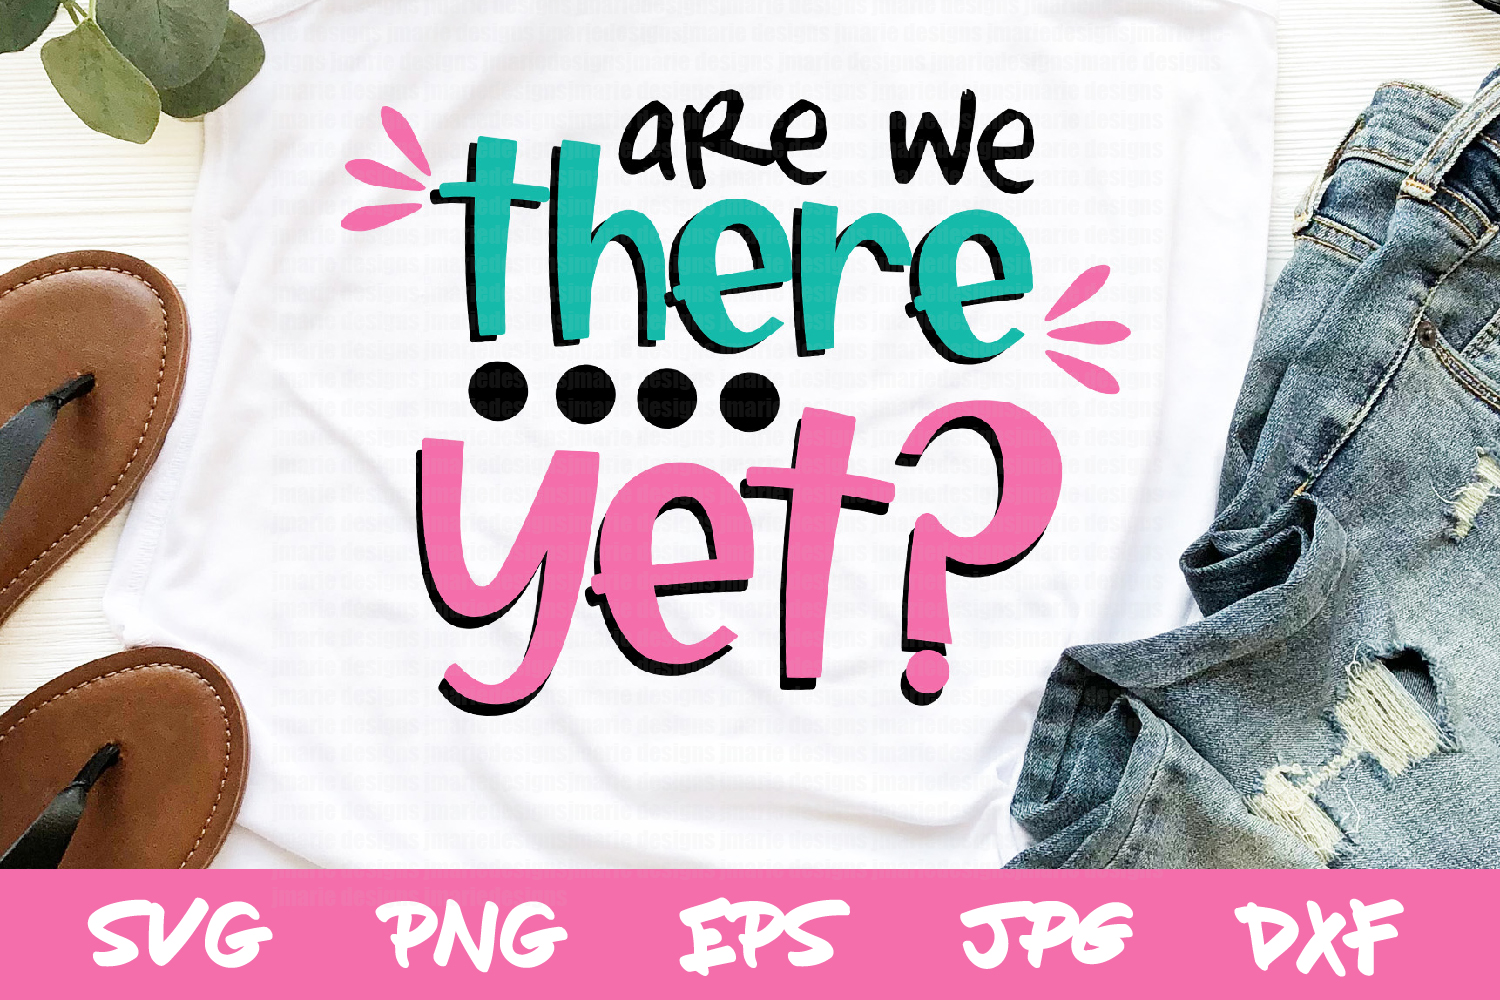 Are We There Yet Svg Road Trip Svg File Graphic By Thejaemarie